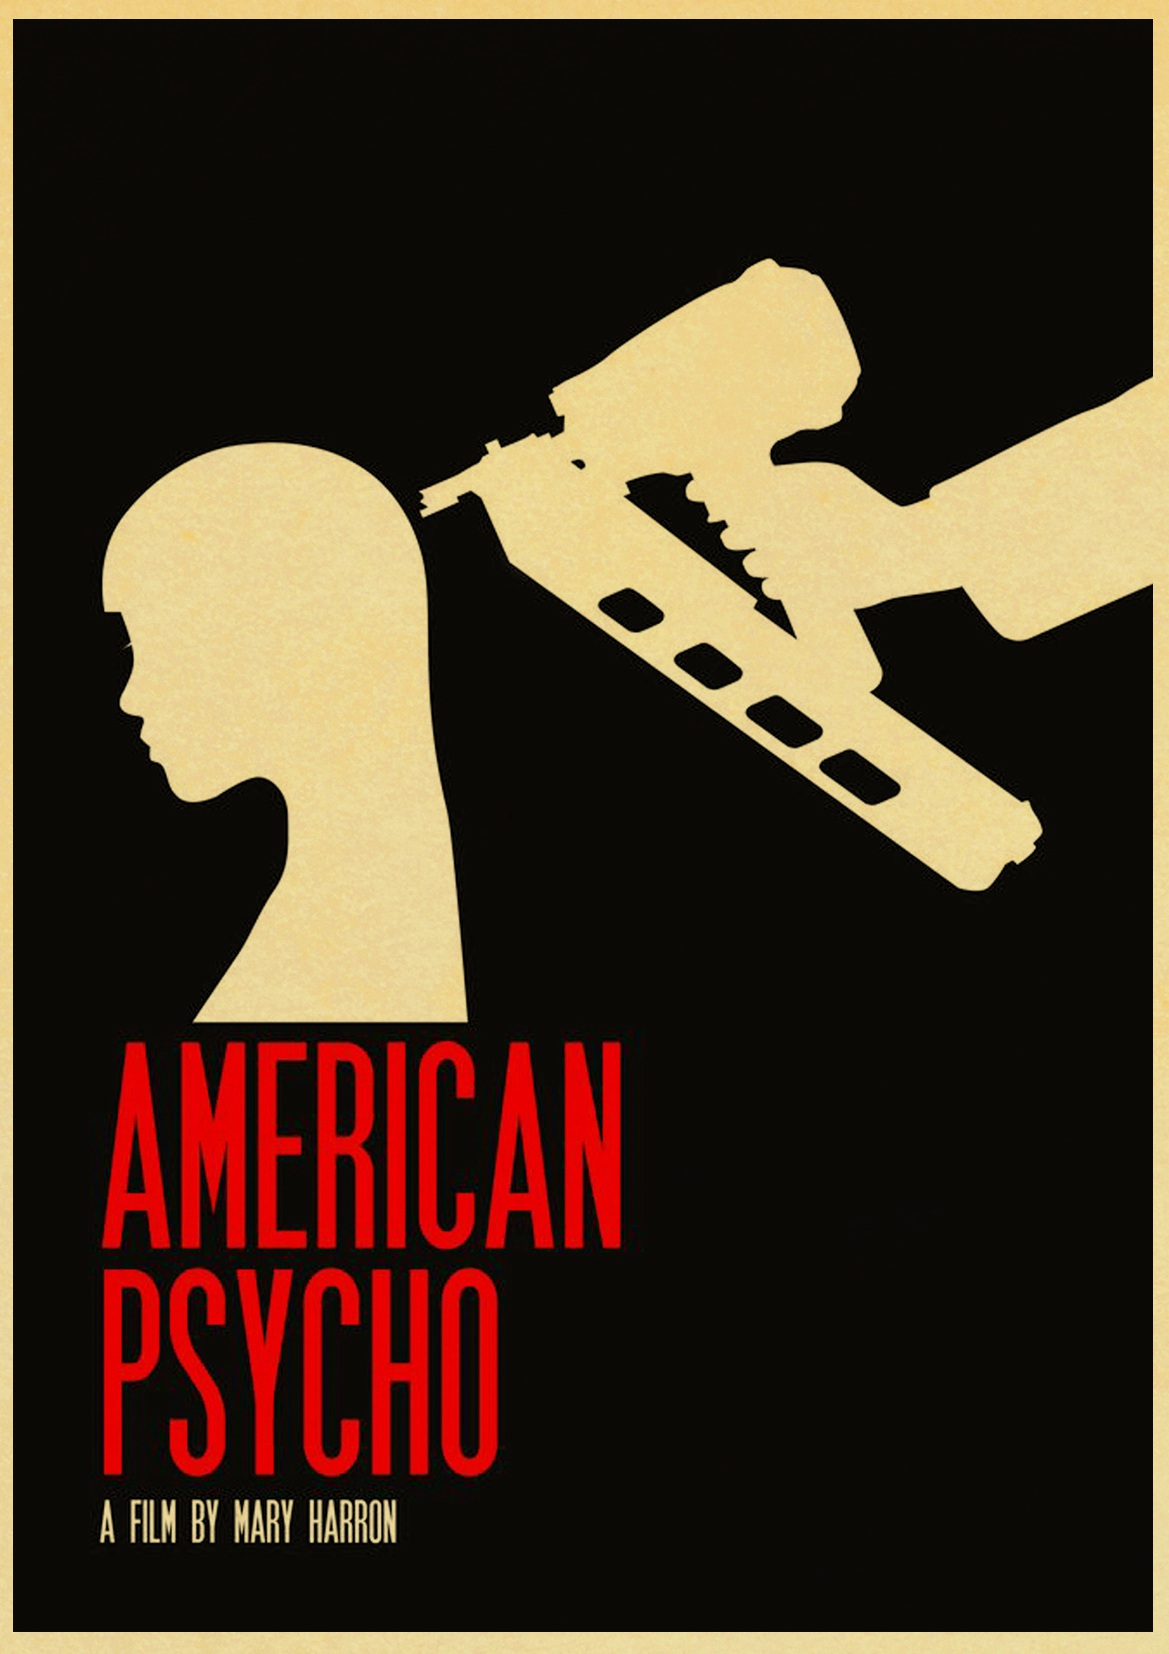 US $1 79 18% OFF|Alfred Hitchcock's Psycho Horror Film Retro Kraft Poster  Decorative DIY Art Poster High Definition Wall Paper Sticker Room Decor-in